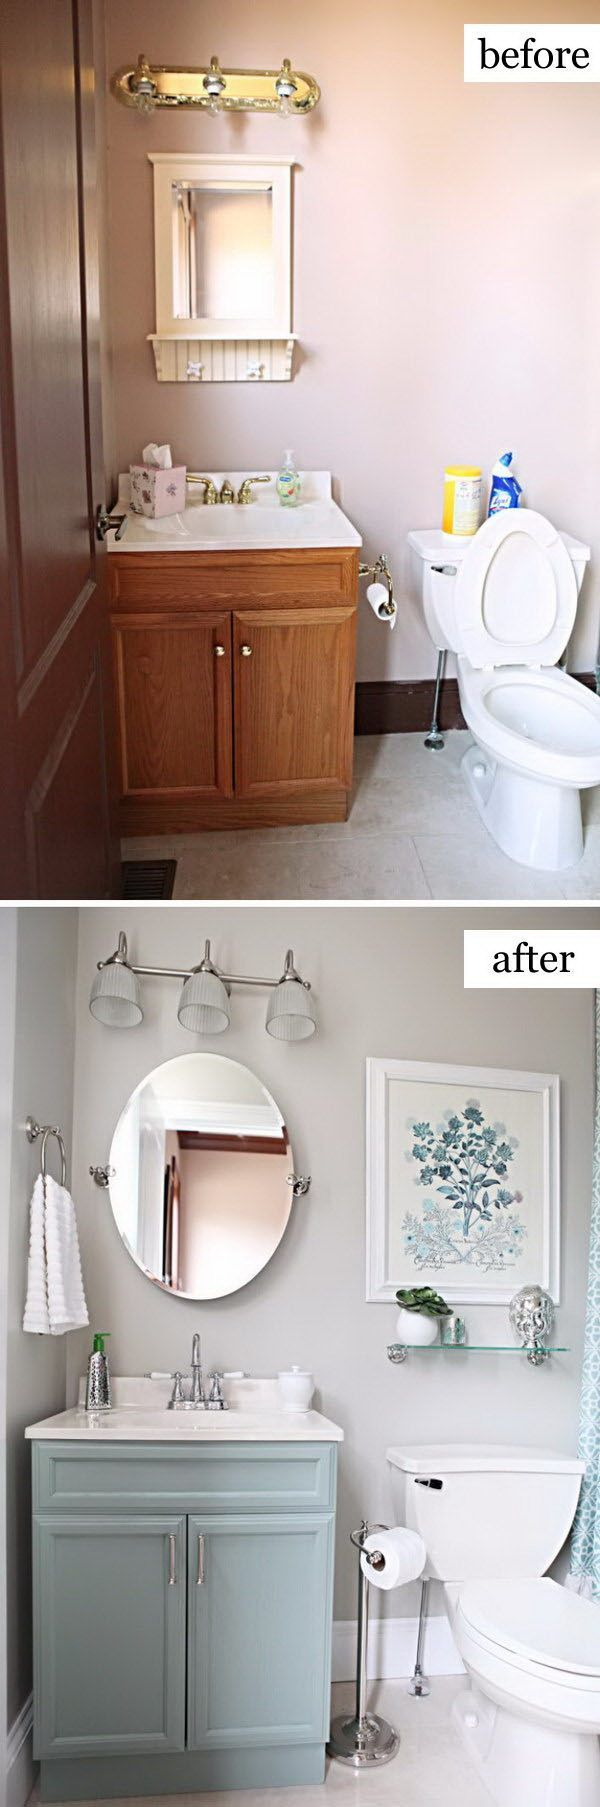 before and after makeovers 20 most beautiful bathroom on bathroom renovation ideas id=48385